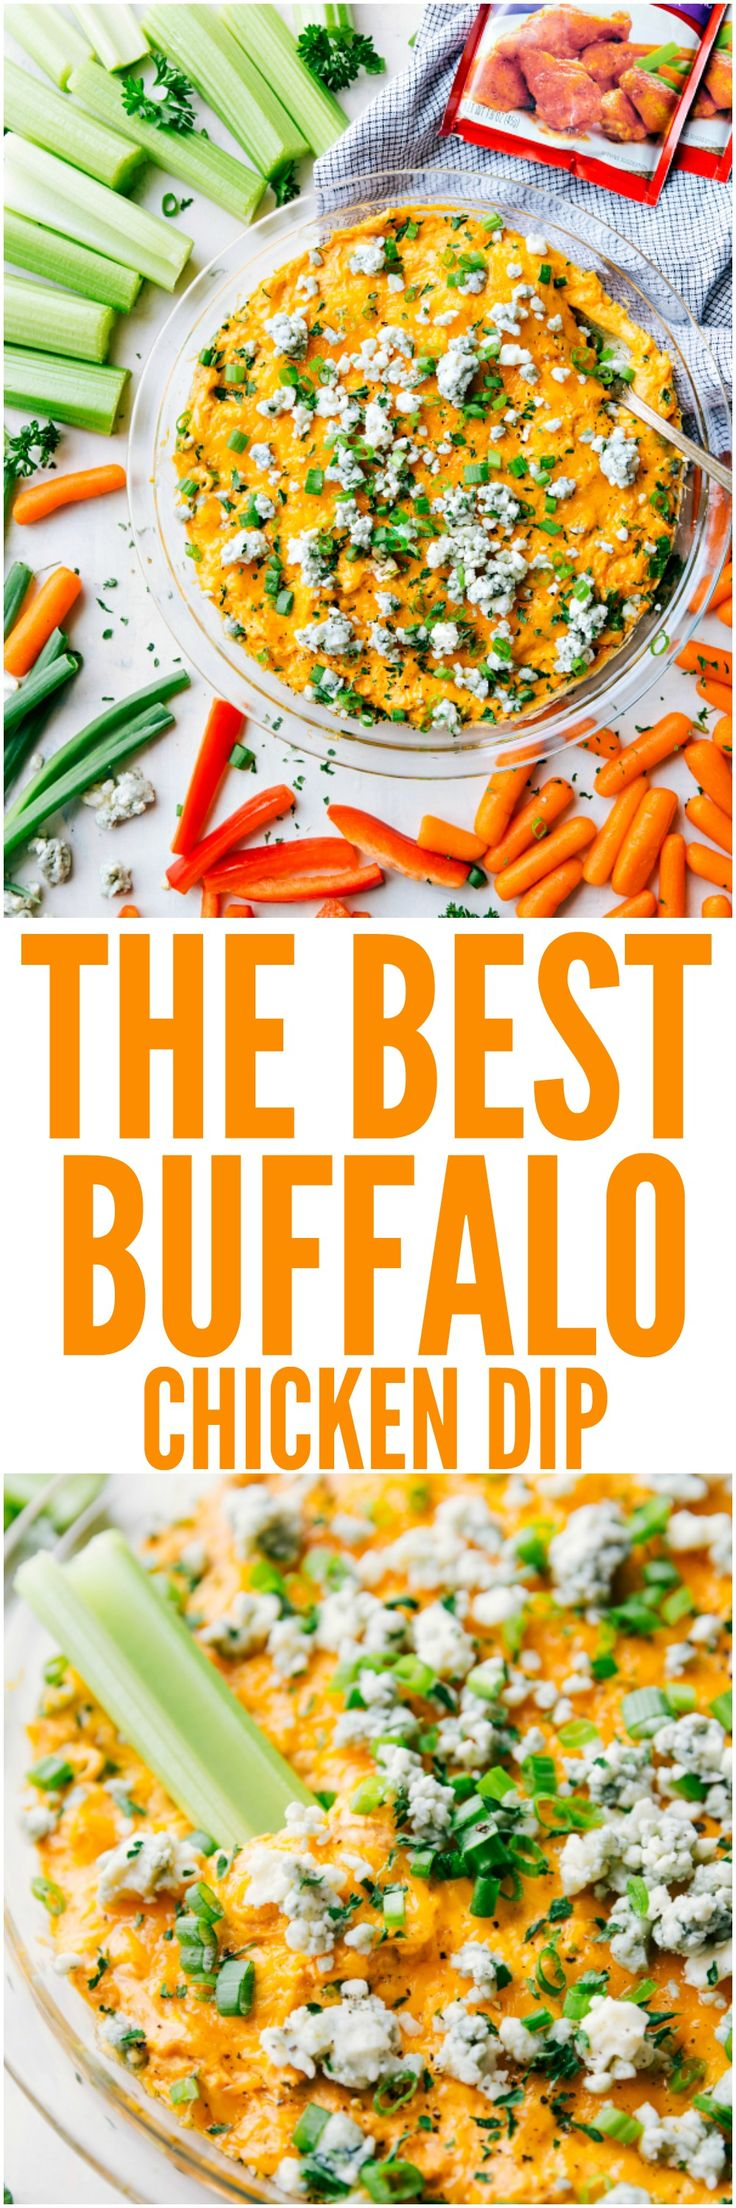 43 best images about Game Day on Pinterest | Chicken ...